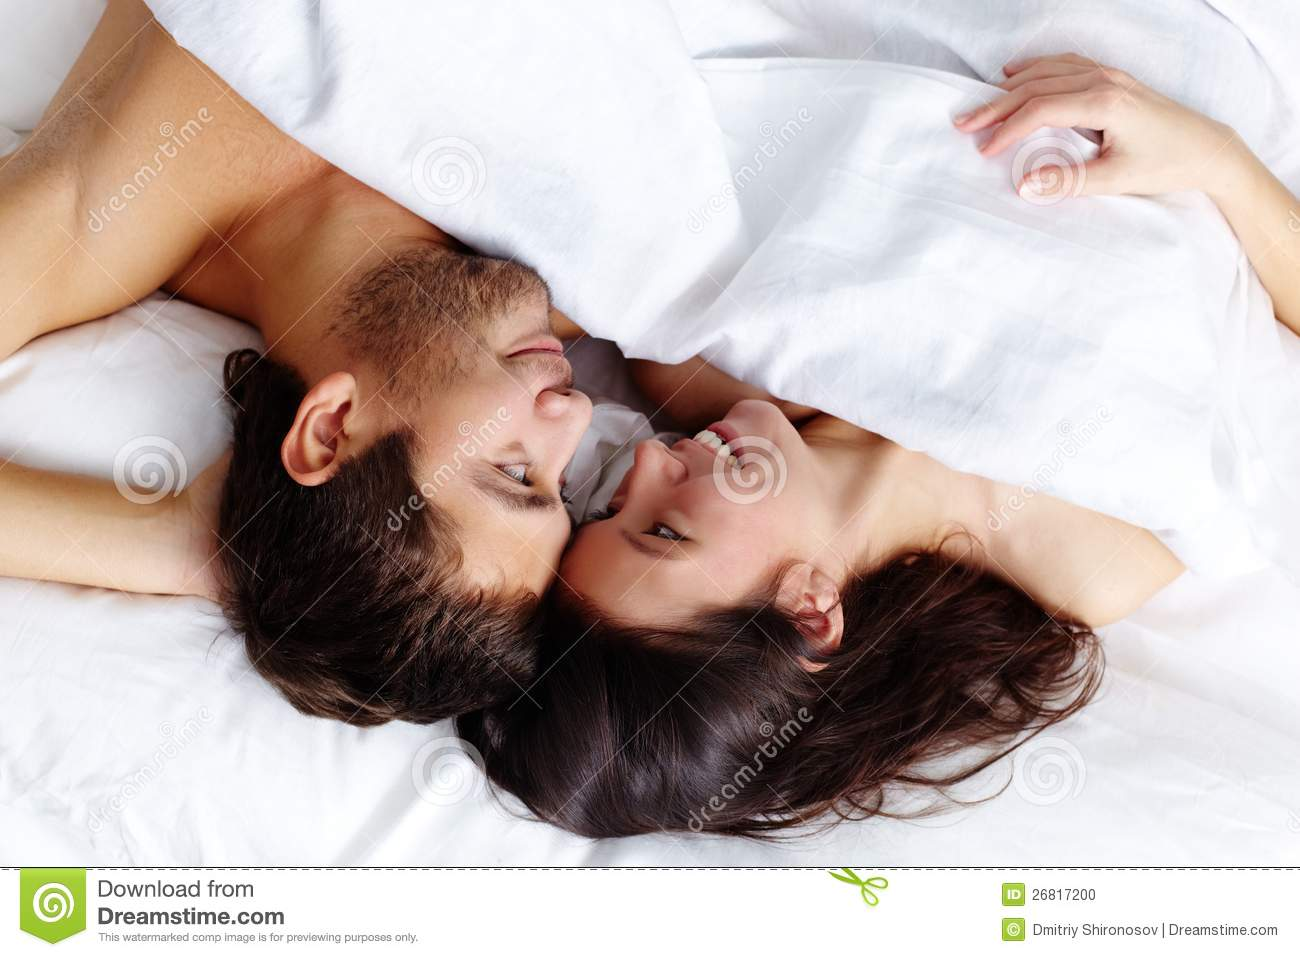 Man and woman mating in bed images